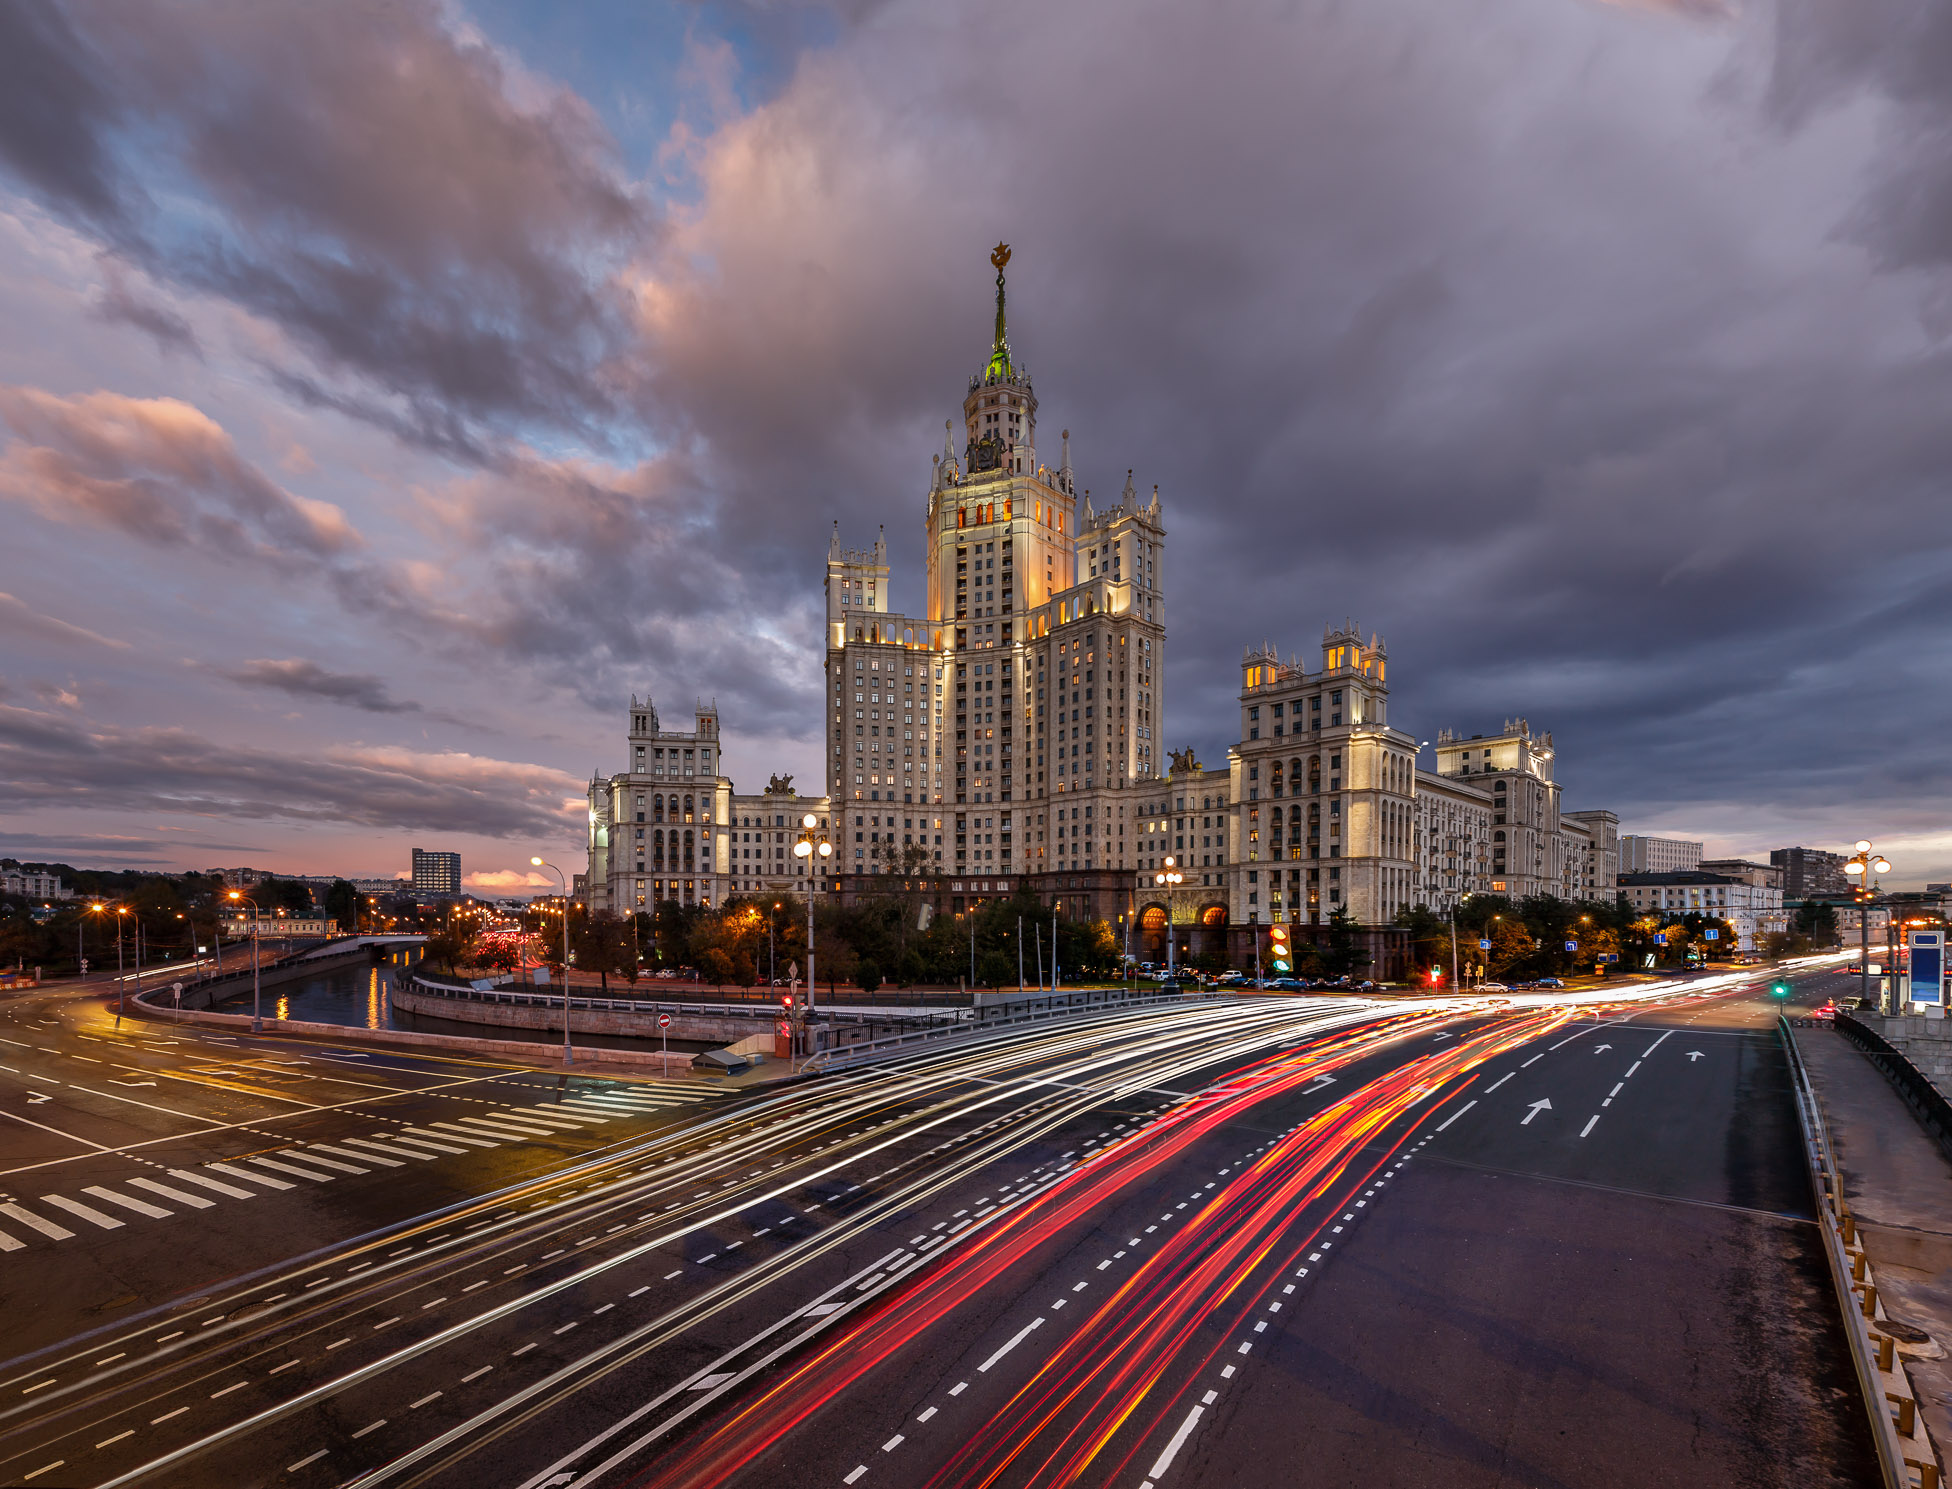 Skyscraper on Kotelnicheskaya Embankment and Traffic Trails at Dusk, Moscow, Russia